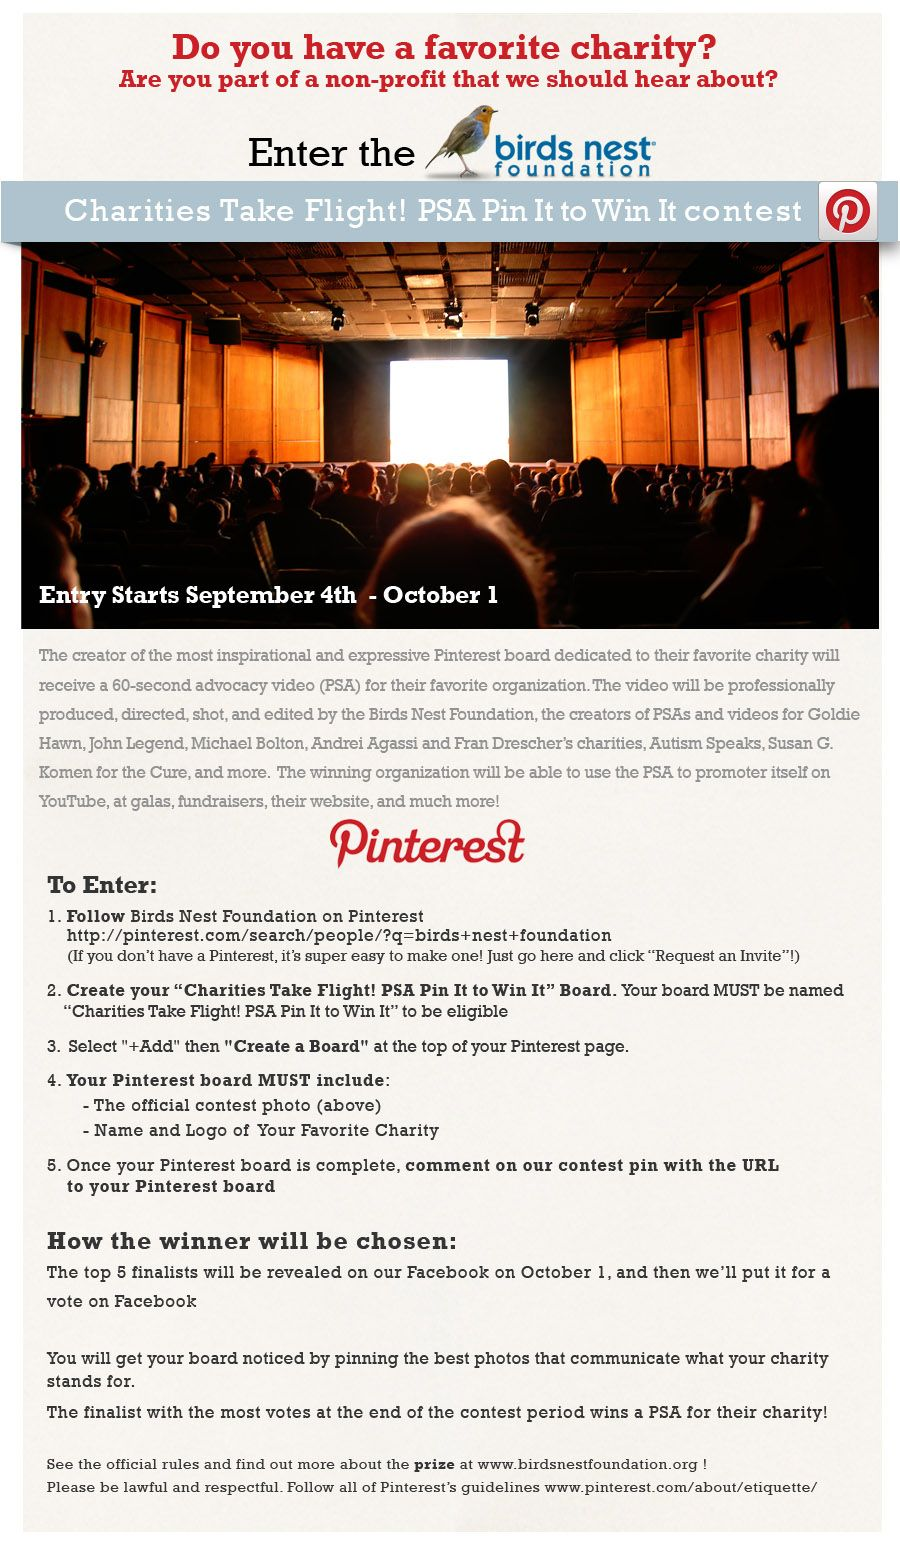 Join our Pinterest contest to win a professionally shot and edited advocacy video for your favorite charity!